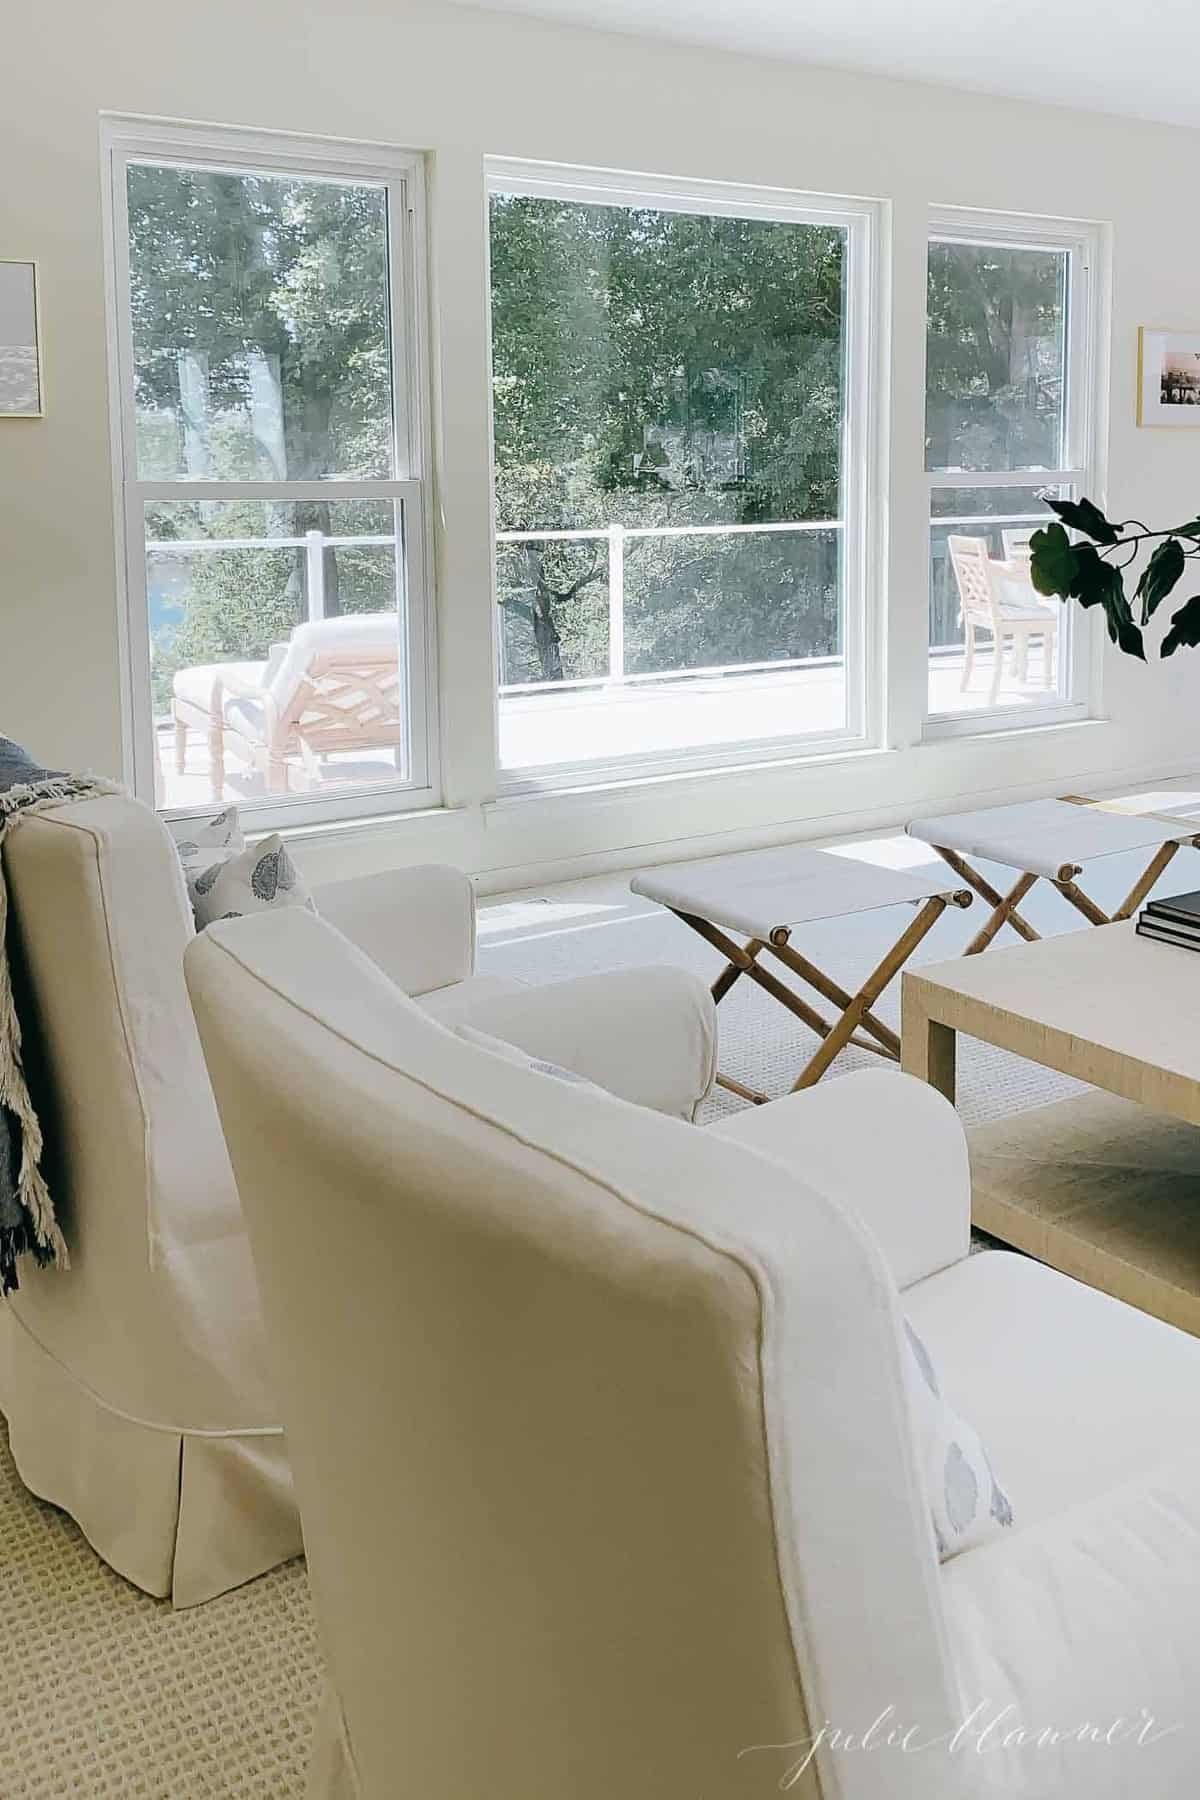 View of a white vinyl deck through large living room windows.